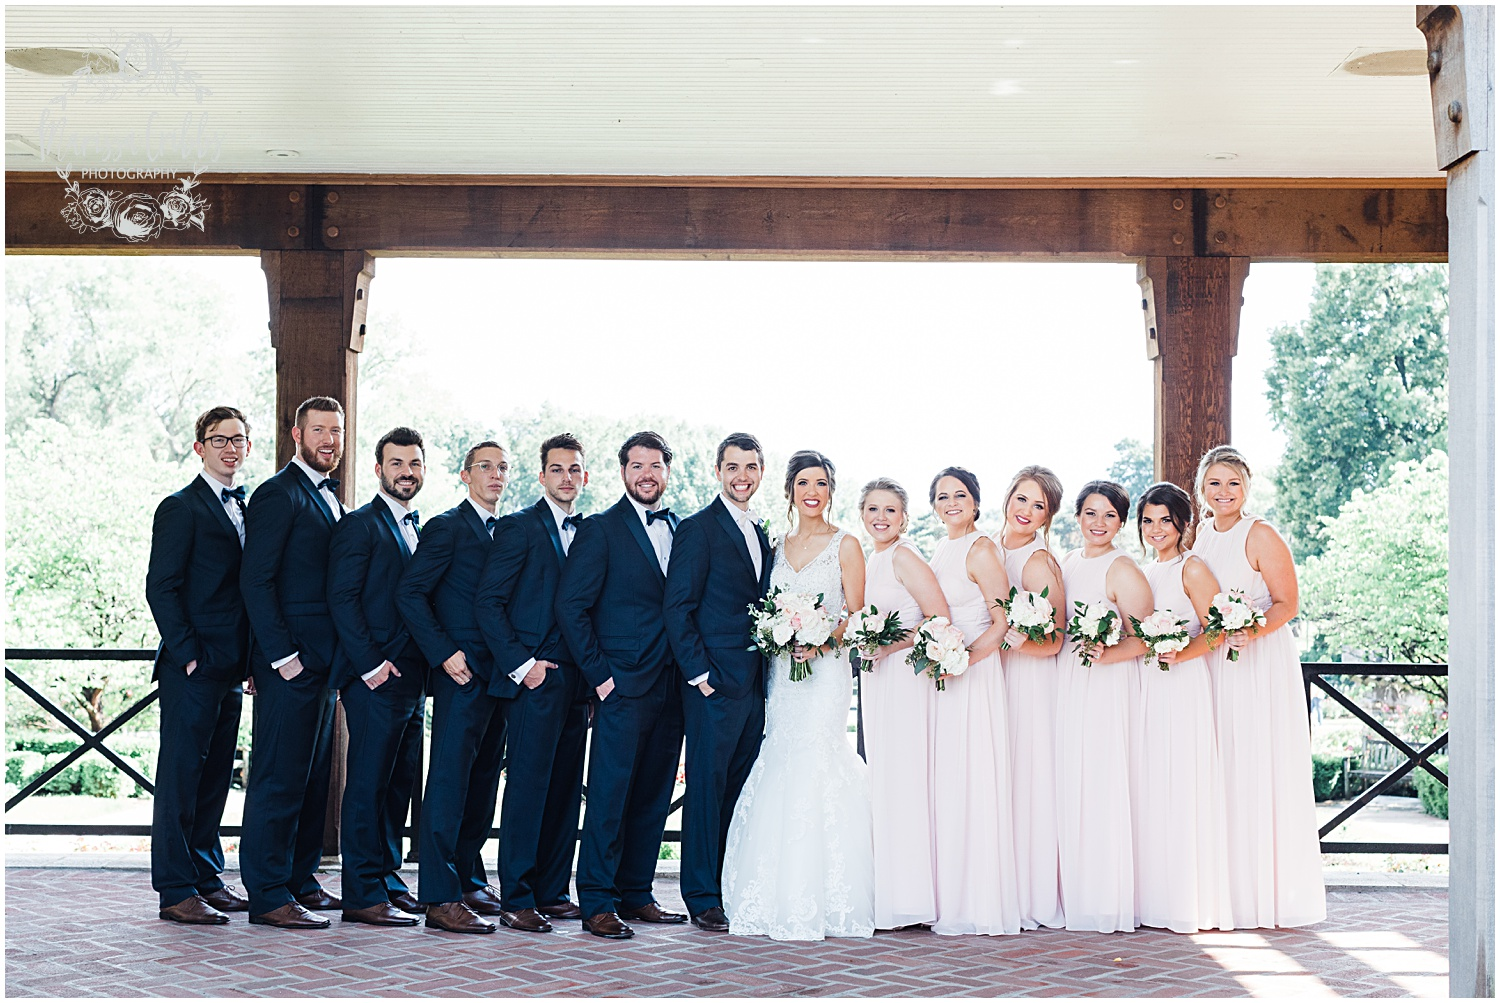 MEGAN & DEREK WEDDING BLOG | MARISSA CRIBBS PHOTOGRAPHY_8171.jpg